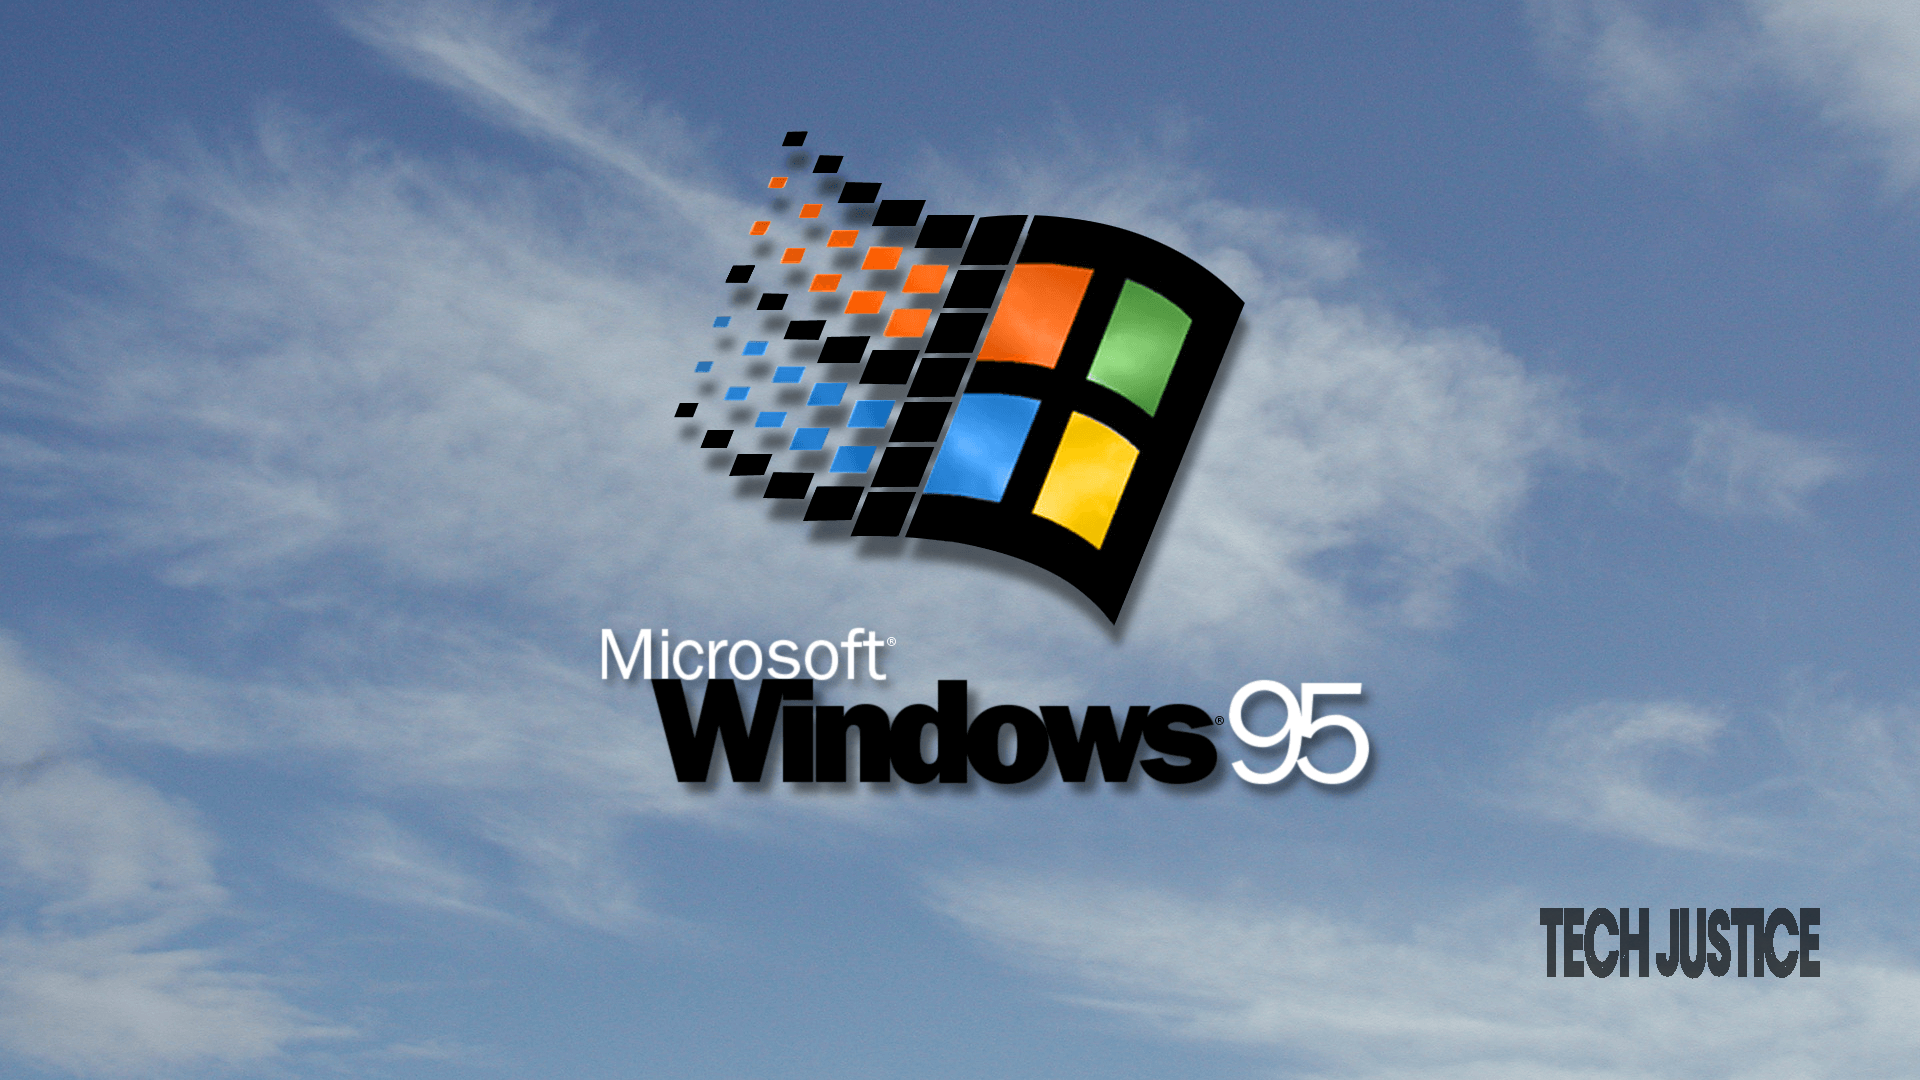 windows 95 Tech Justice